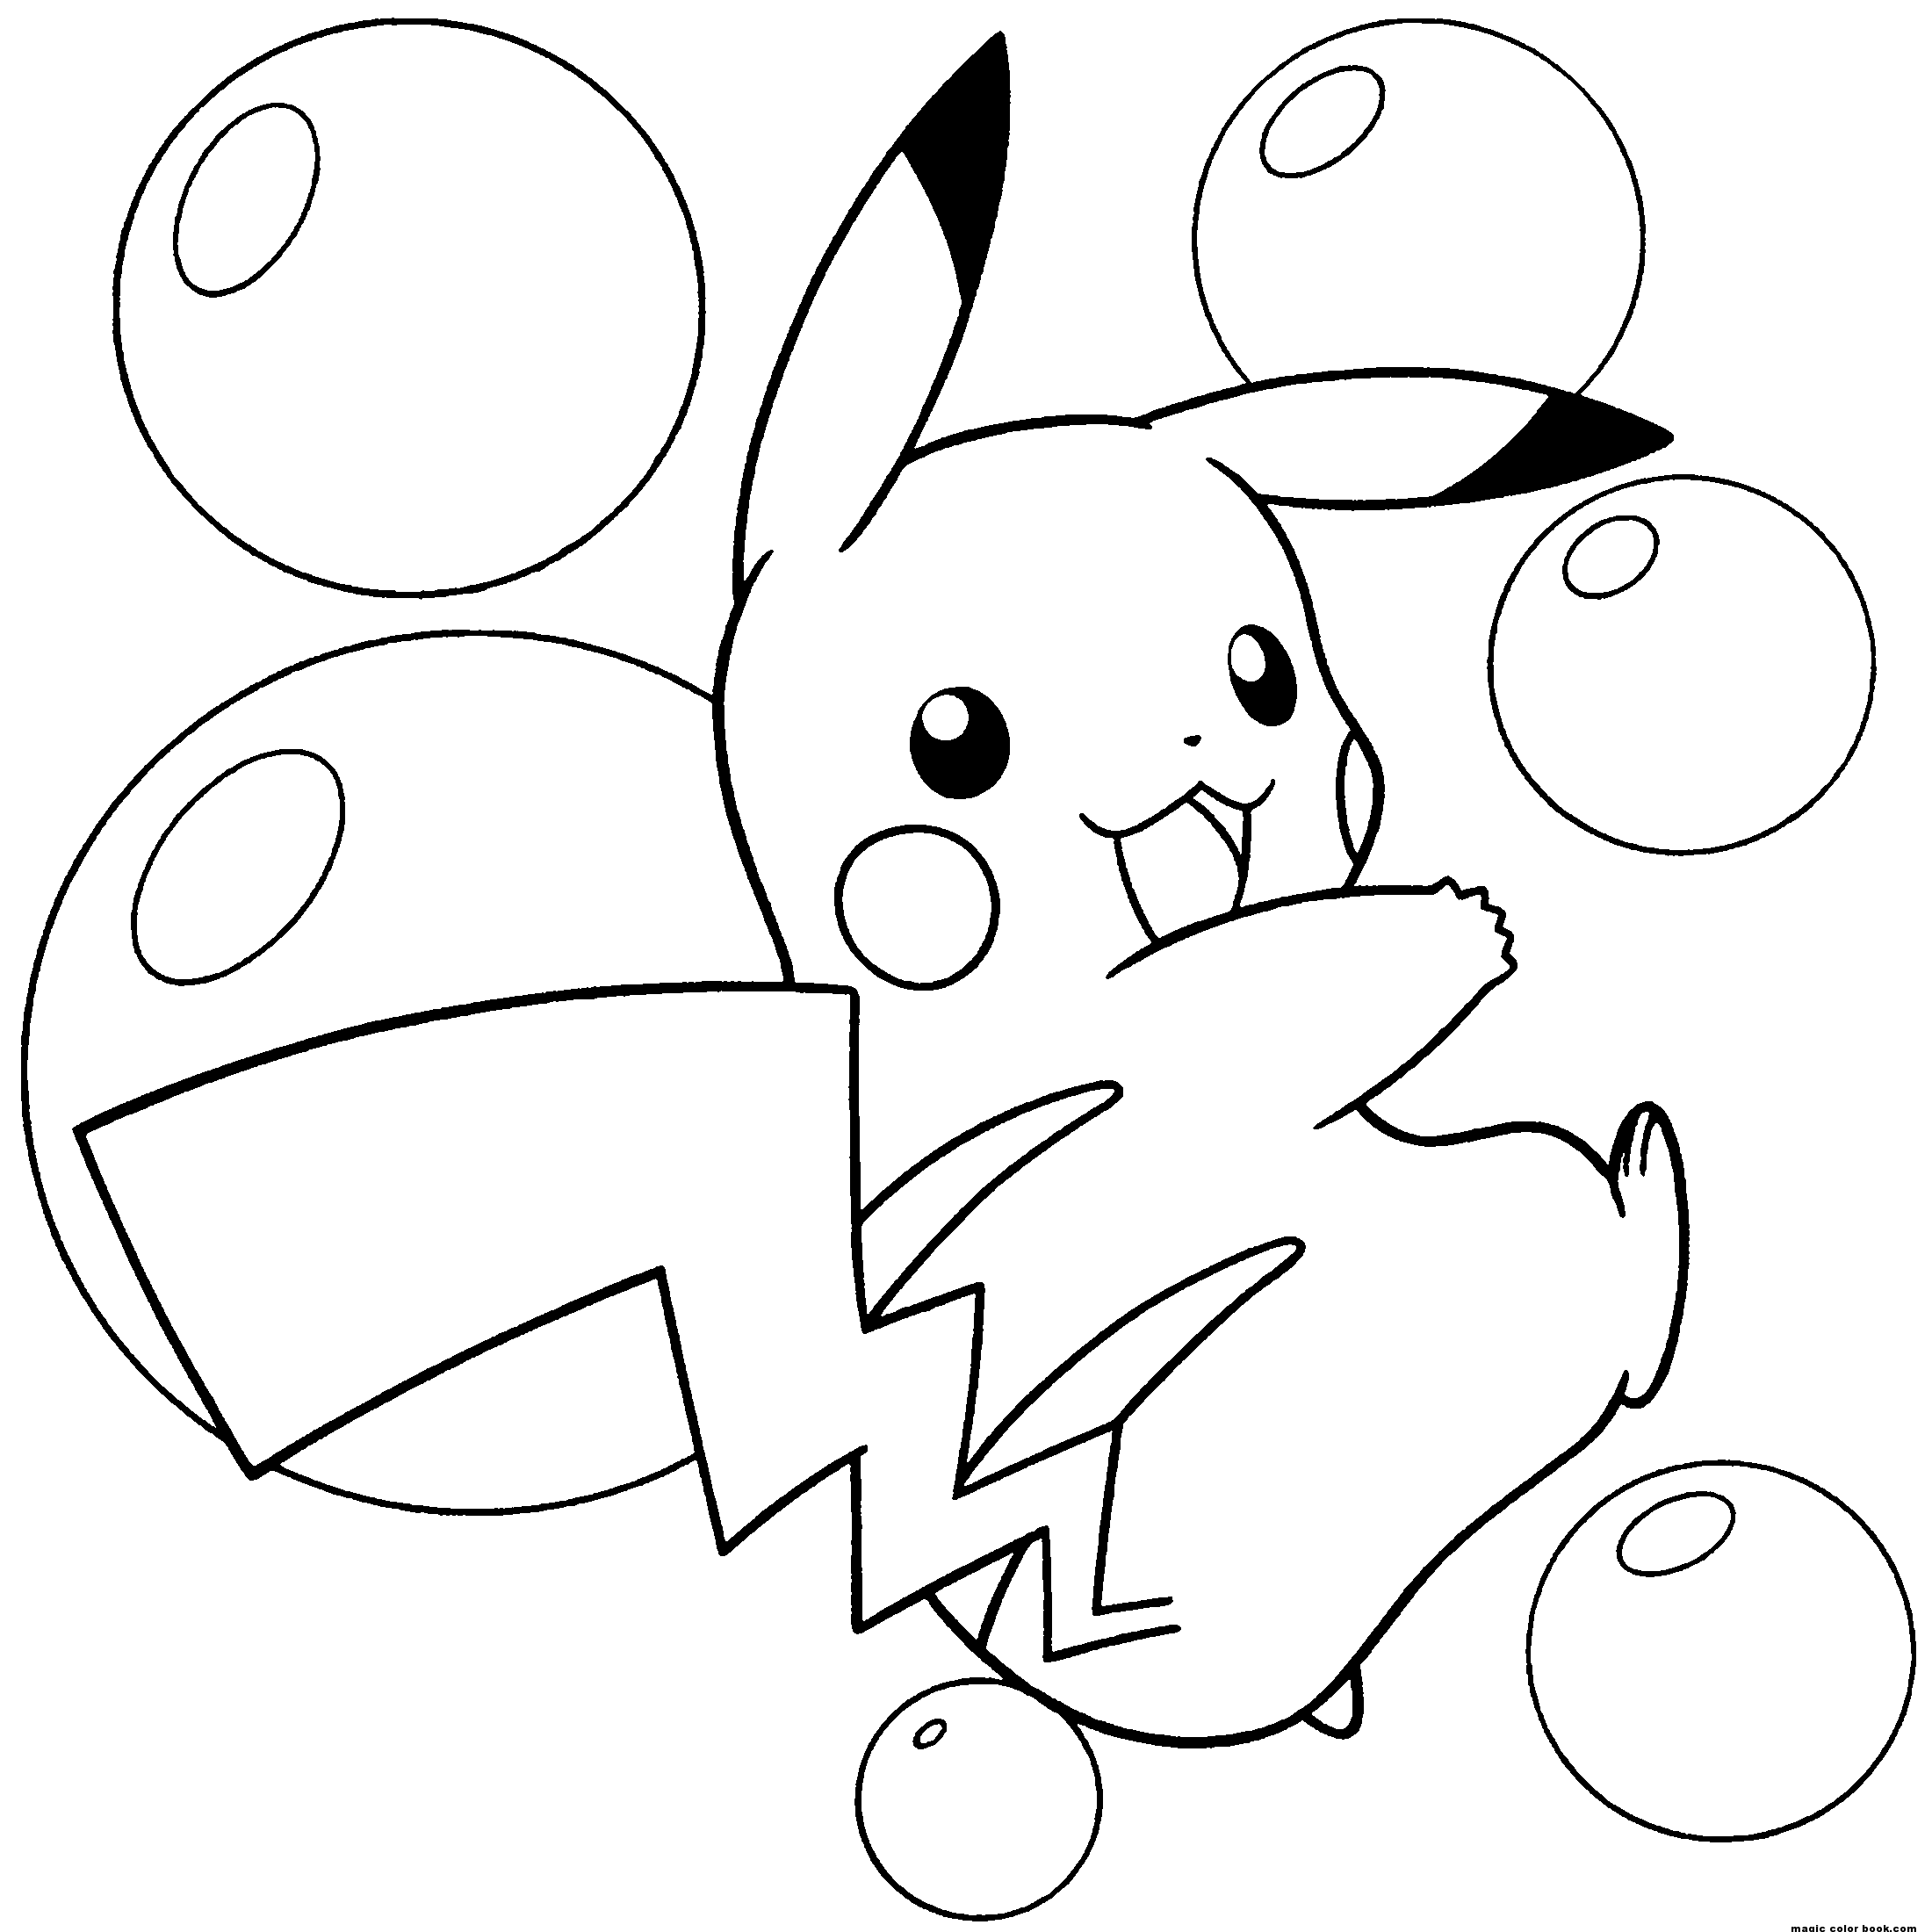 17 Best images about Pokemon Coloring Pages on Pinterest ...